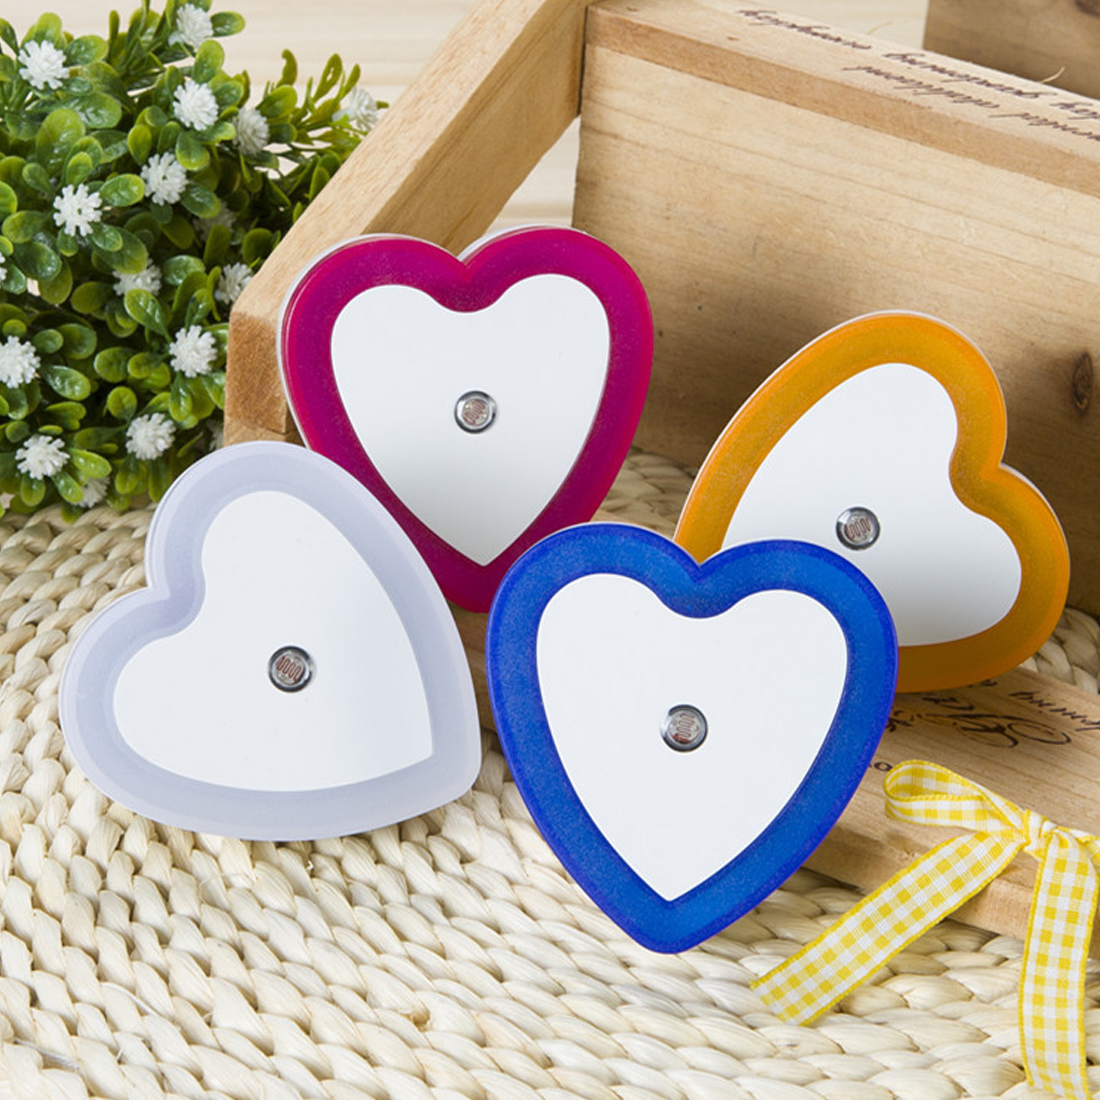 High Quality Auto LED Light Induction Sensor Control Bedroom Night Lights Bed Lamp Heart Shape 110-220V EU Plug 4 Colors